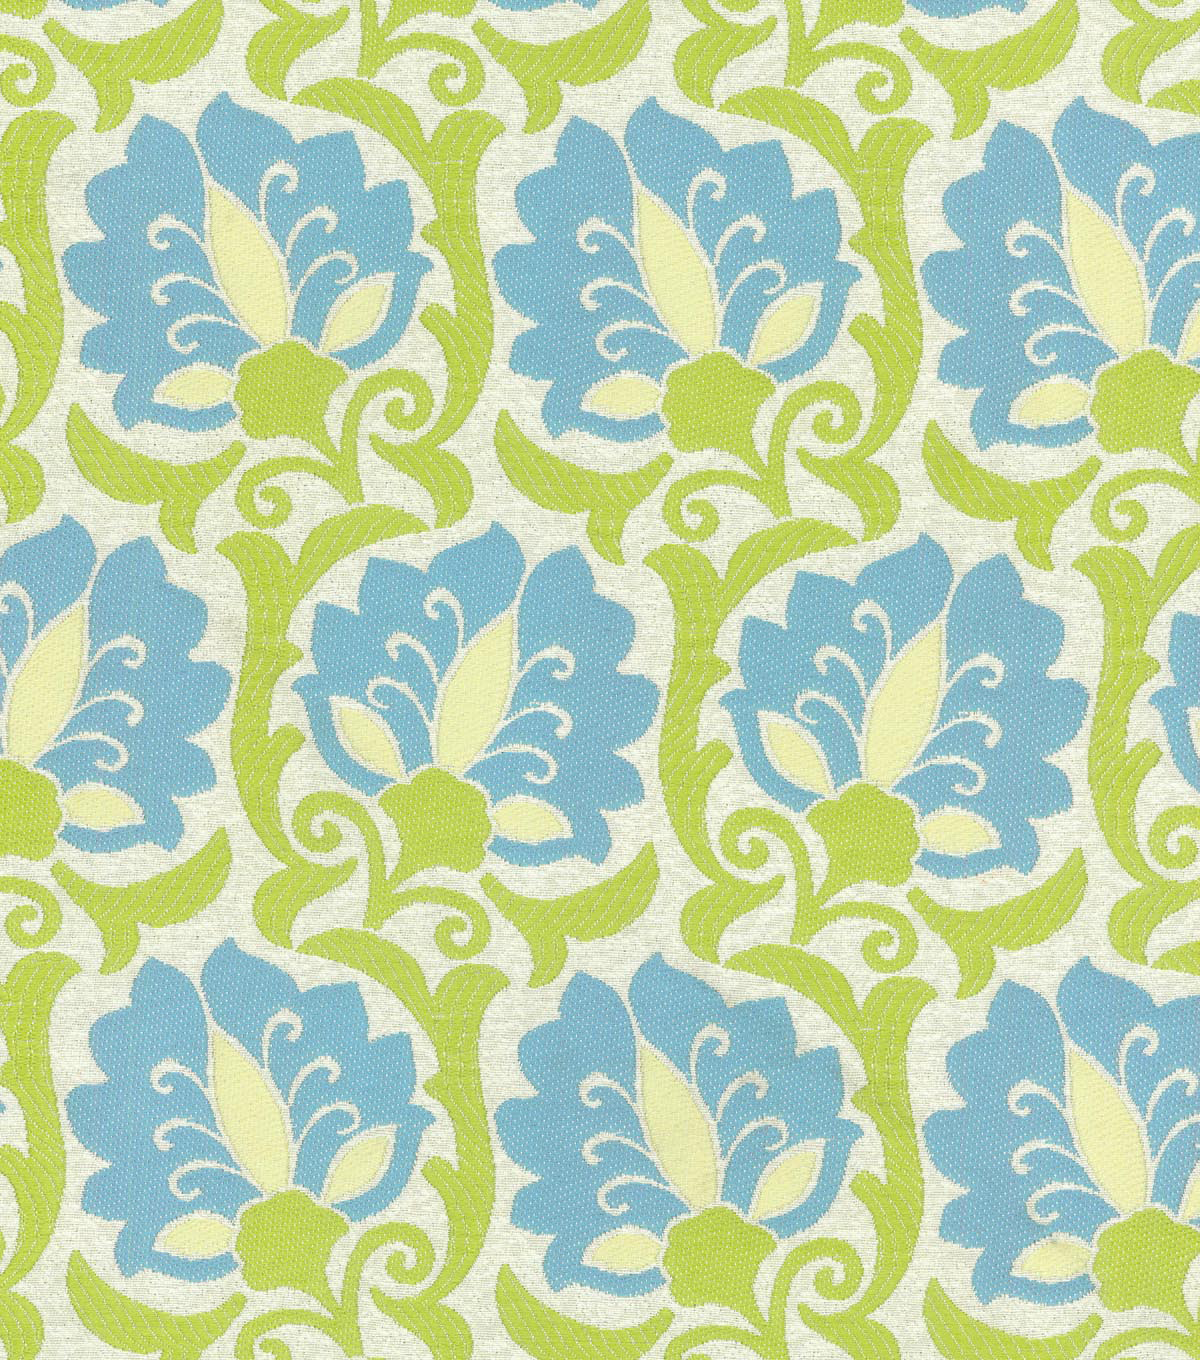 Home Decor 8\u0022x8\u0022 Swatch Fabric-Waverly Playful Prose Spring